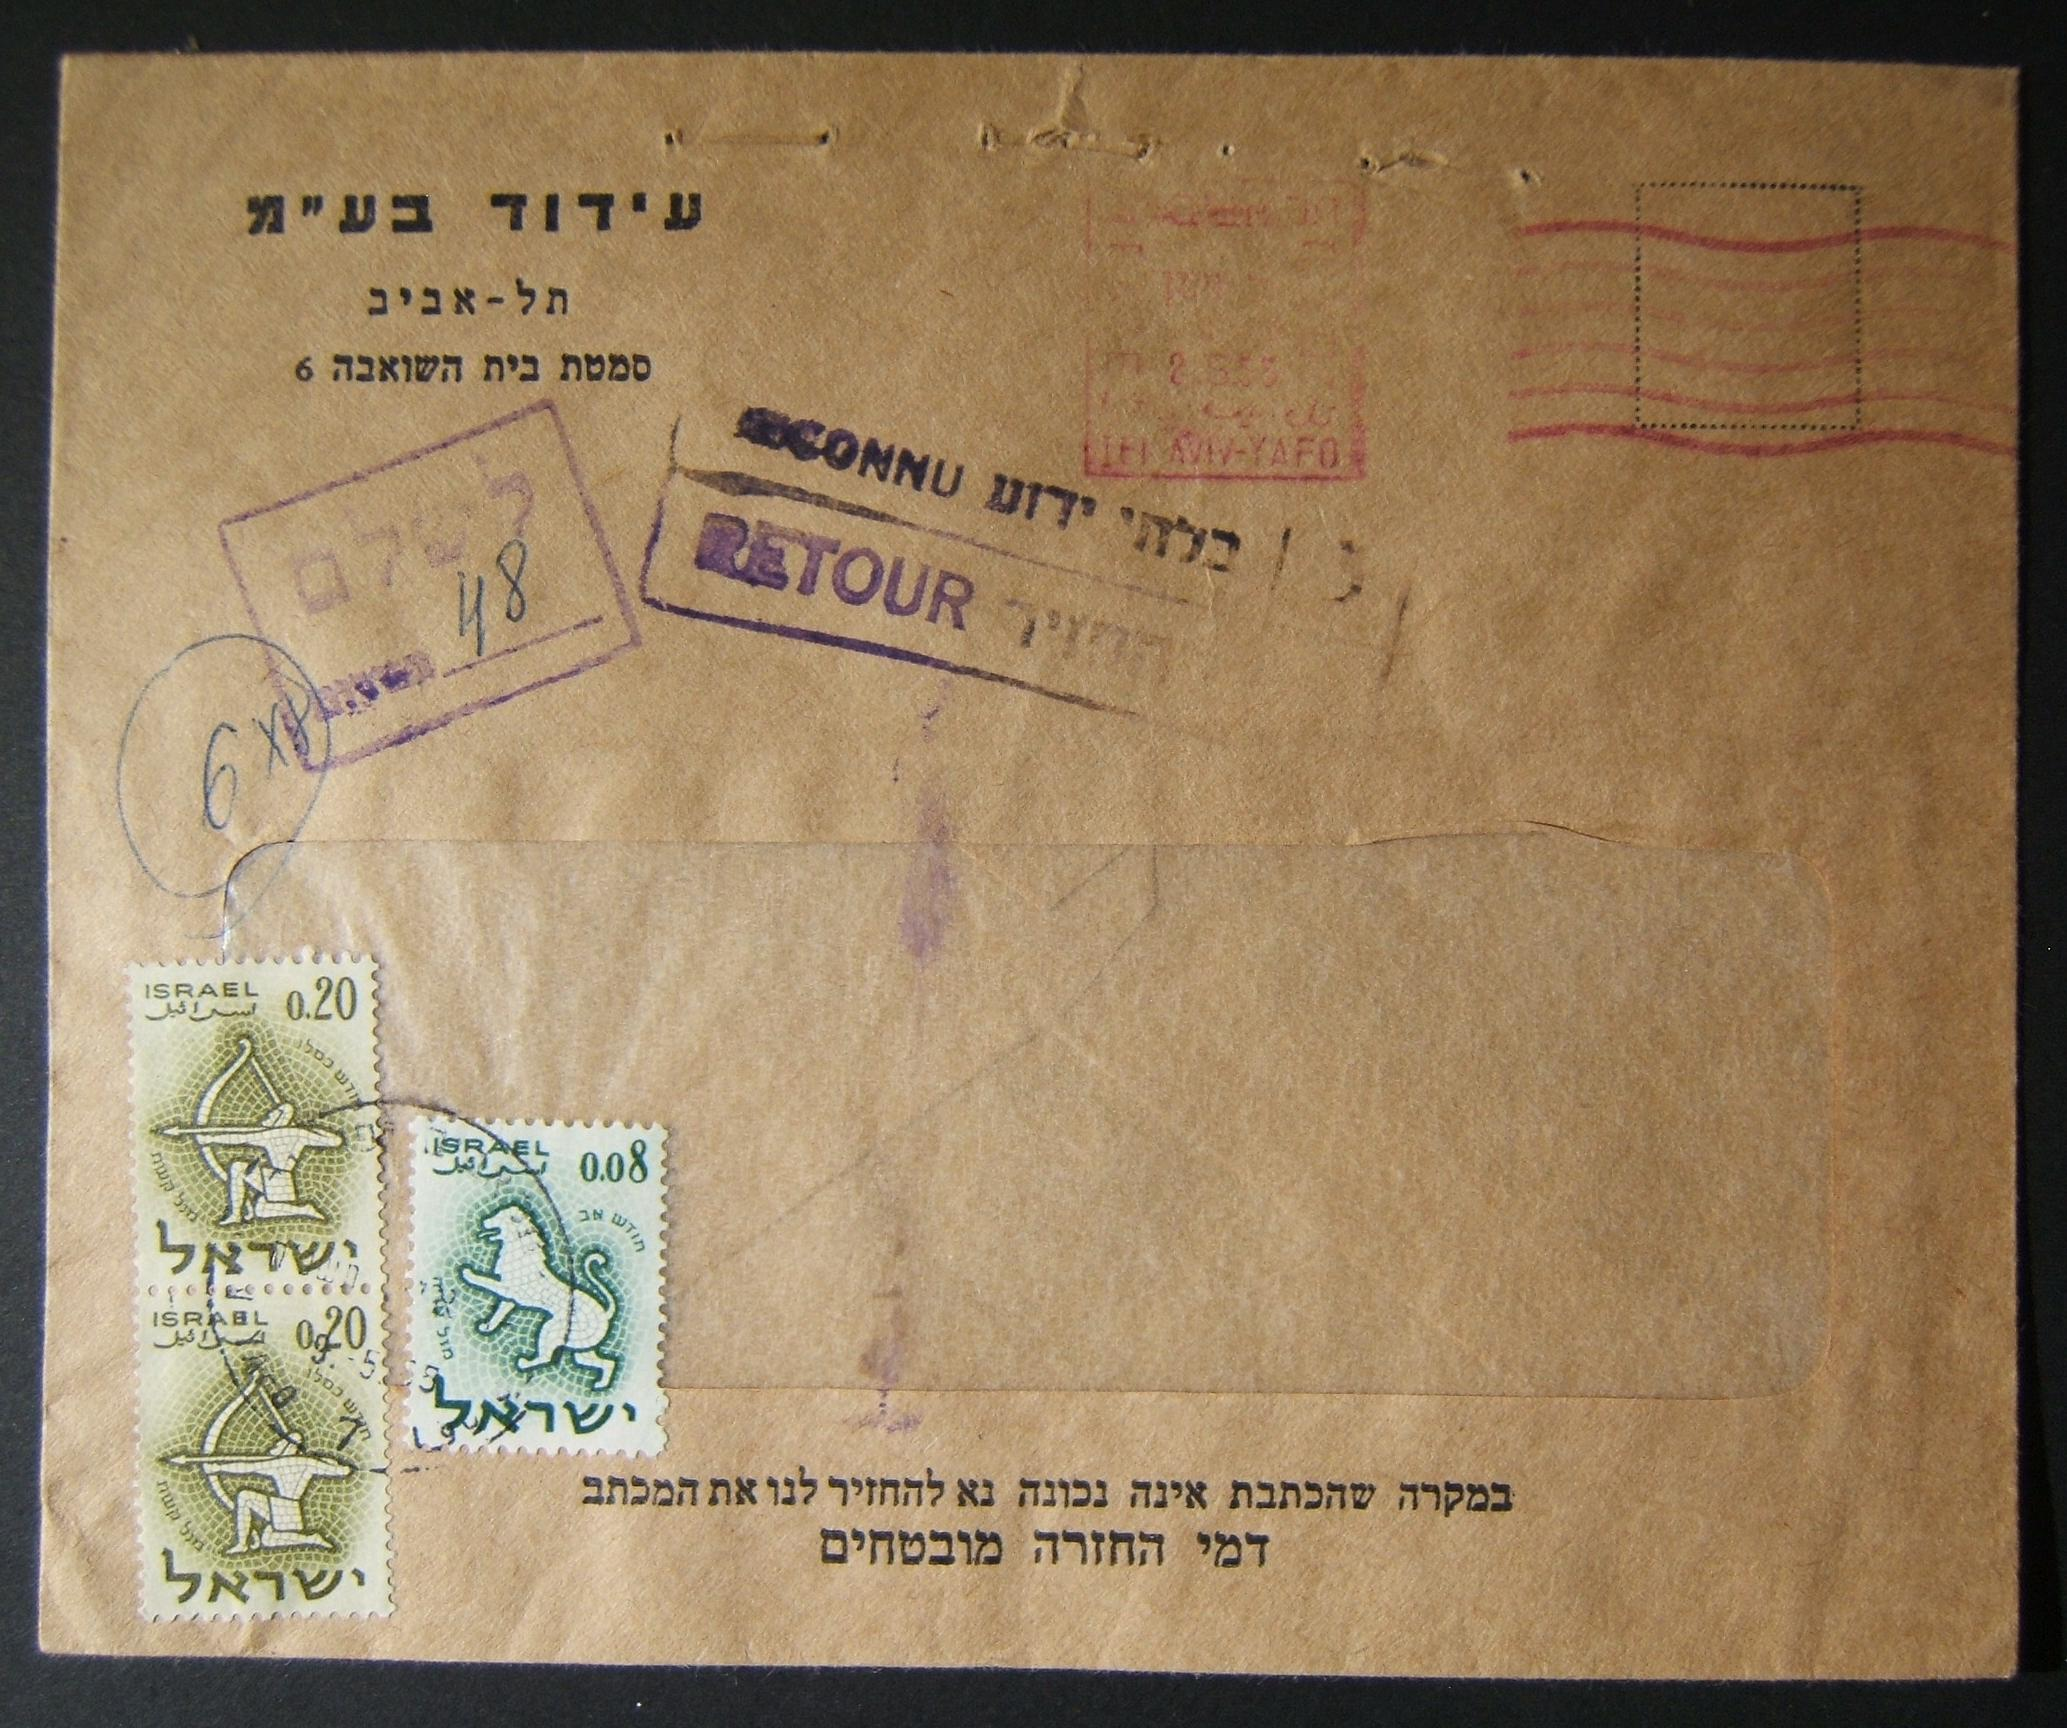 1965 domestic 'top of the pile' taxed franking: 2-5-65 printed matter commercial cover ex TLV branch of Idud Ltd. franked by machine prepayment at the DO-11 period 8 Ag PM rate but